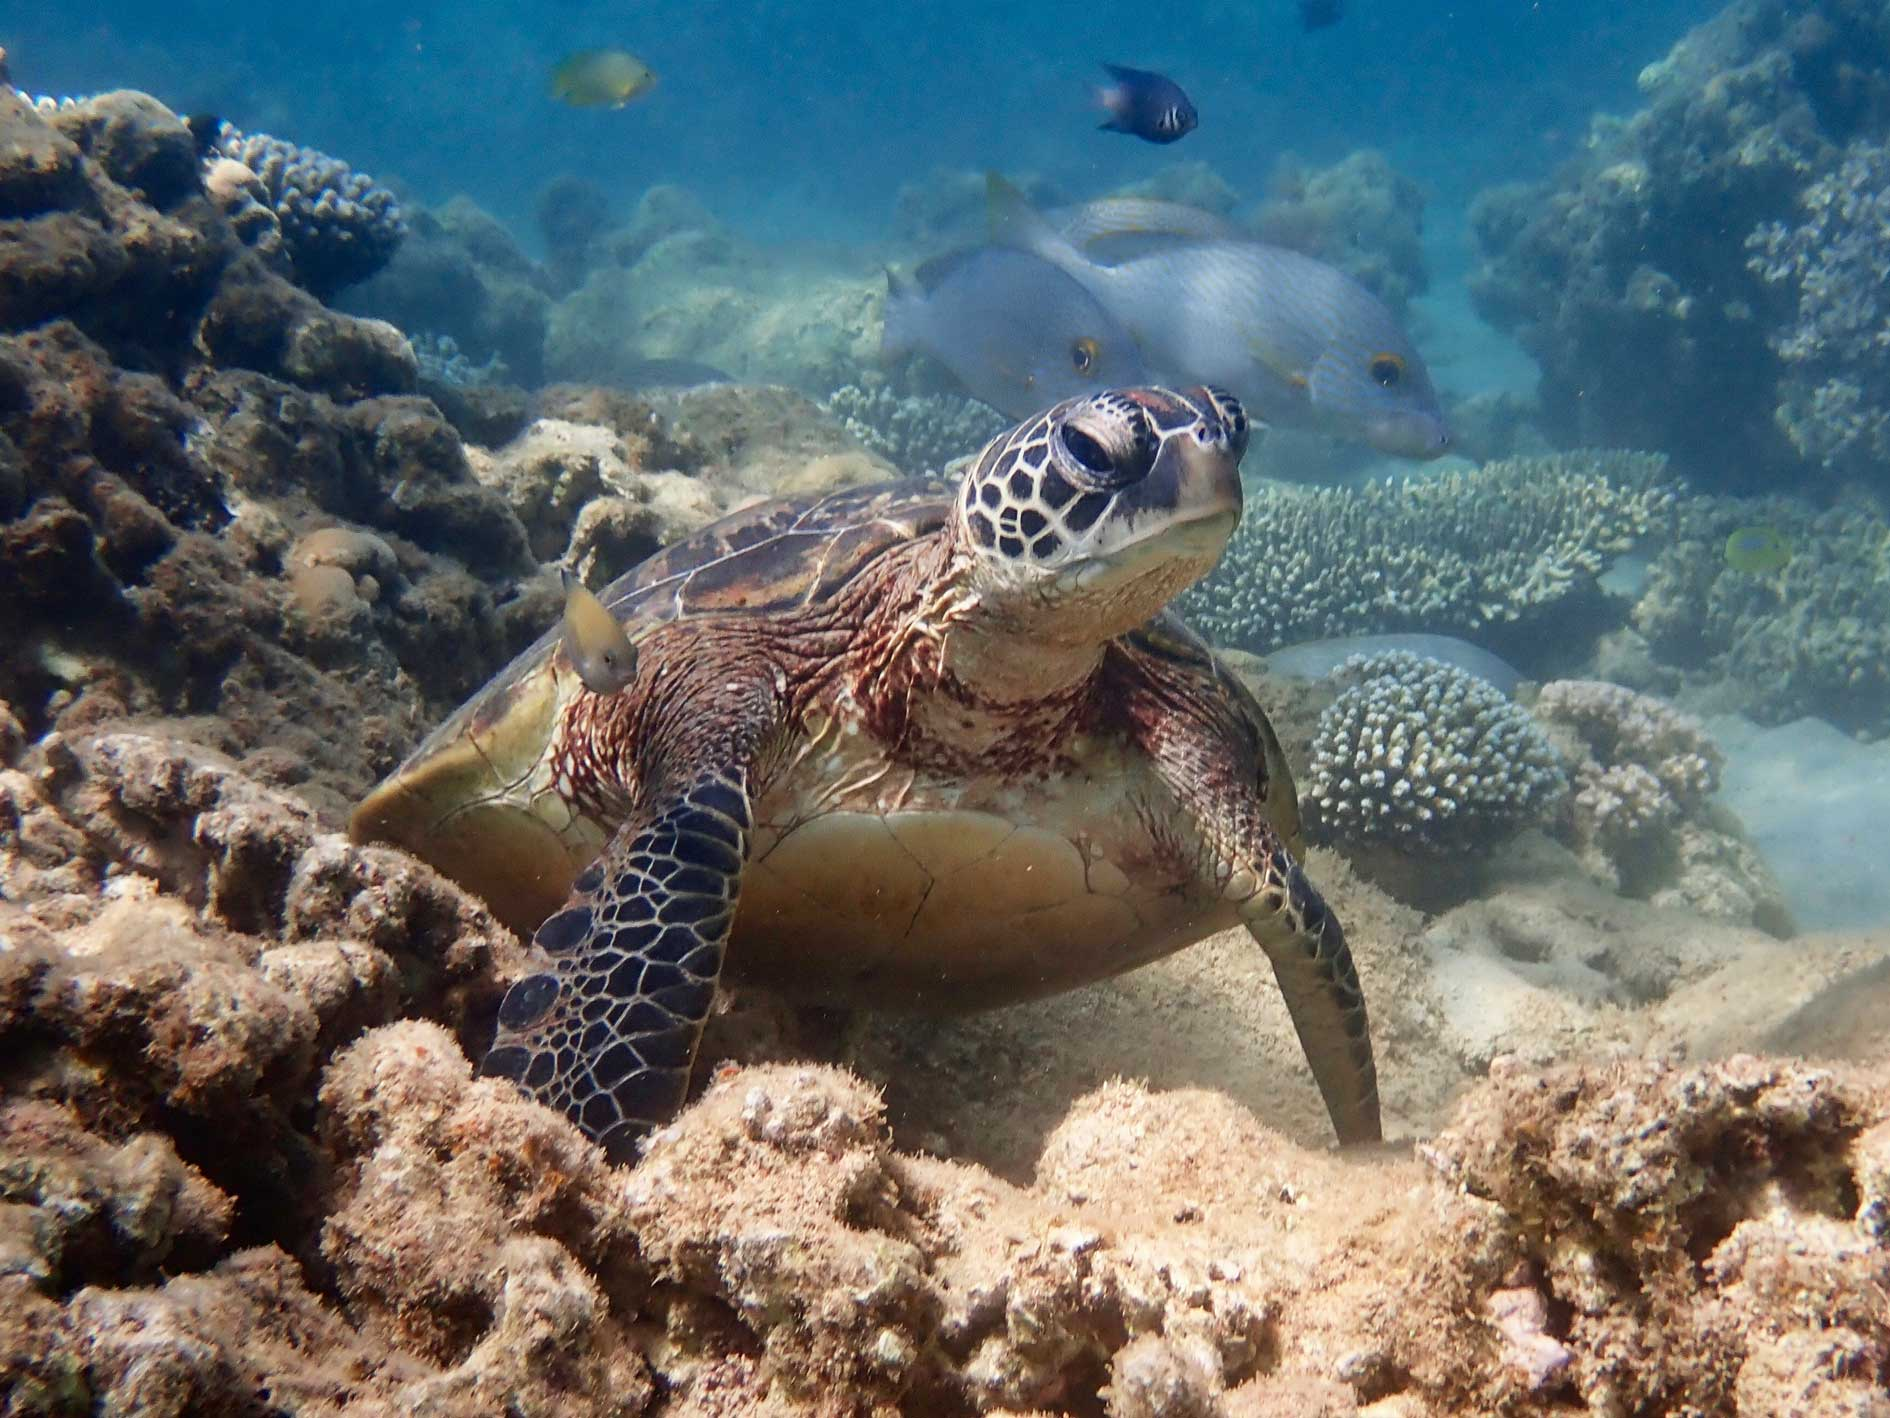 Turtle rests on a coral reef surrounded by fish, seen while snorkelling on Turtle Tour at Exmouth, Ningaloo Reef, Western Australia